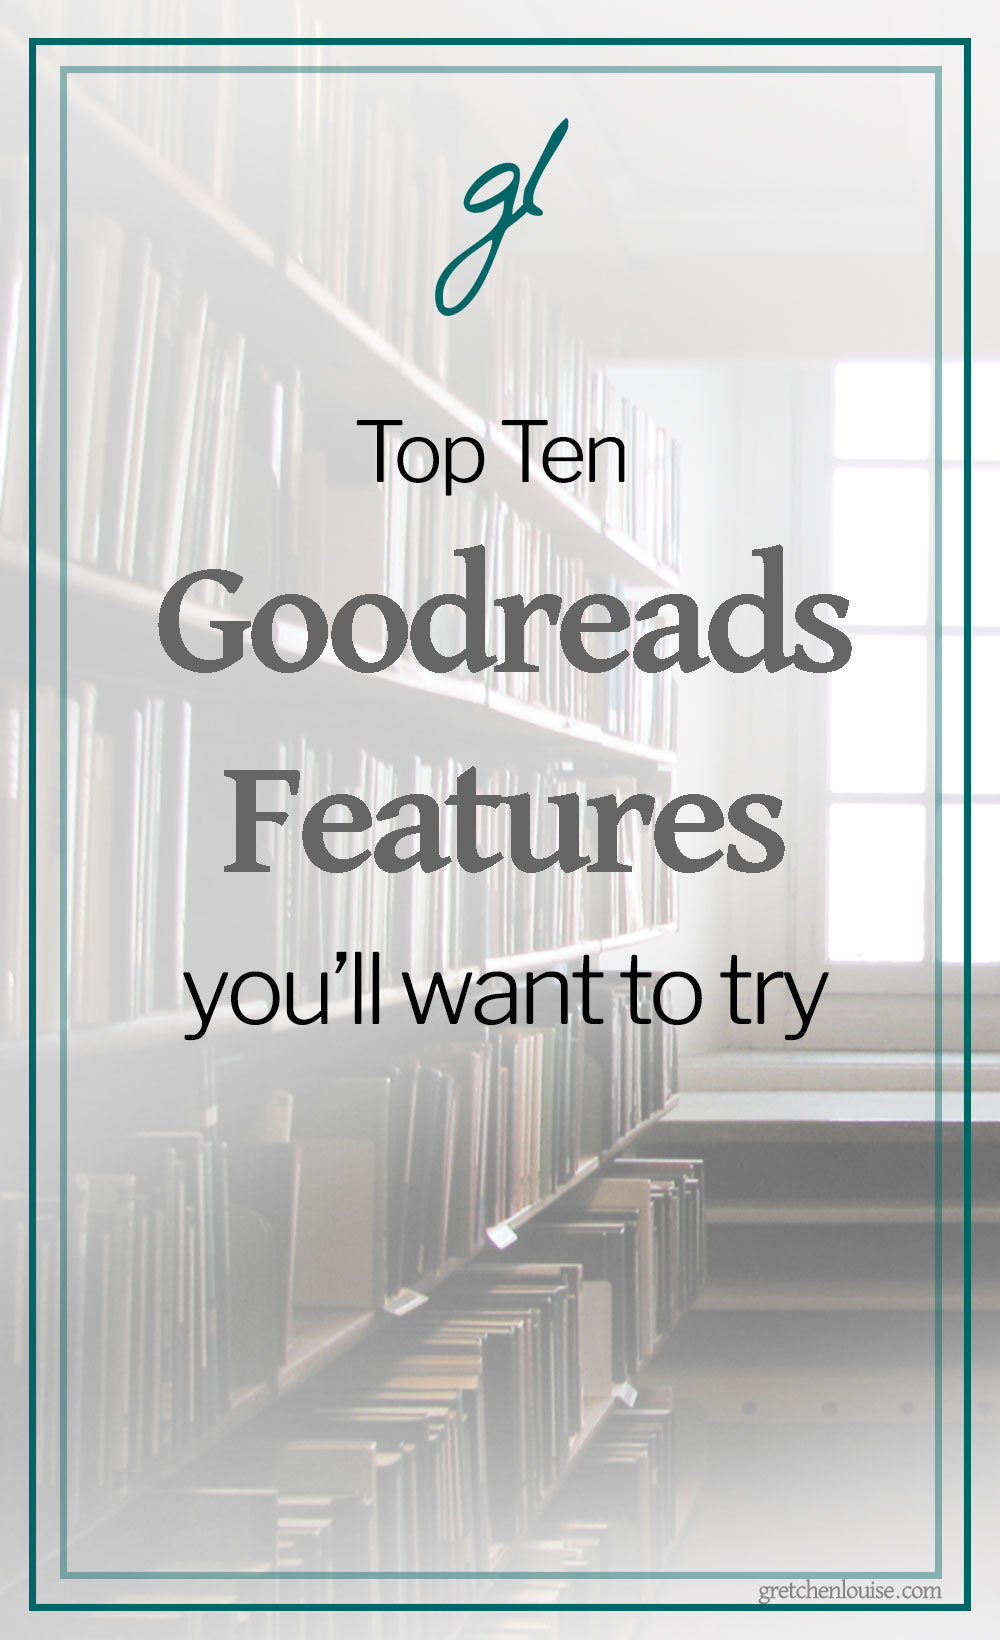 Ask me for my favorite authors and I can name two or three. Ask me for the best book I read last year and I'll probably draw a complete blank. Only to remember them hours later, after our conversation is over.That's why I've started using Goodreads more faithfully. via @GretLouise